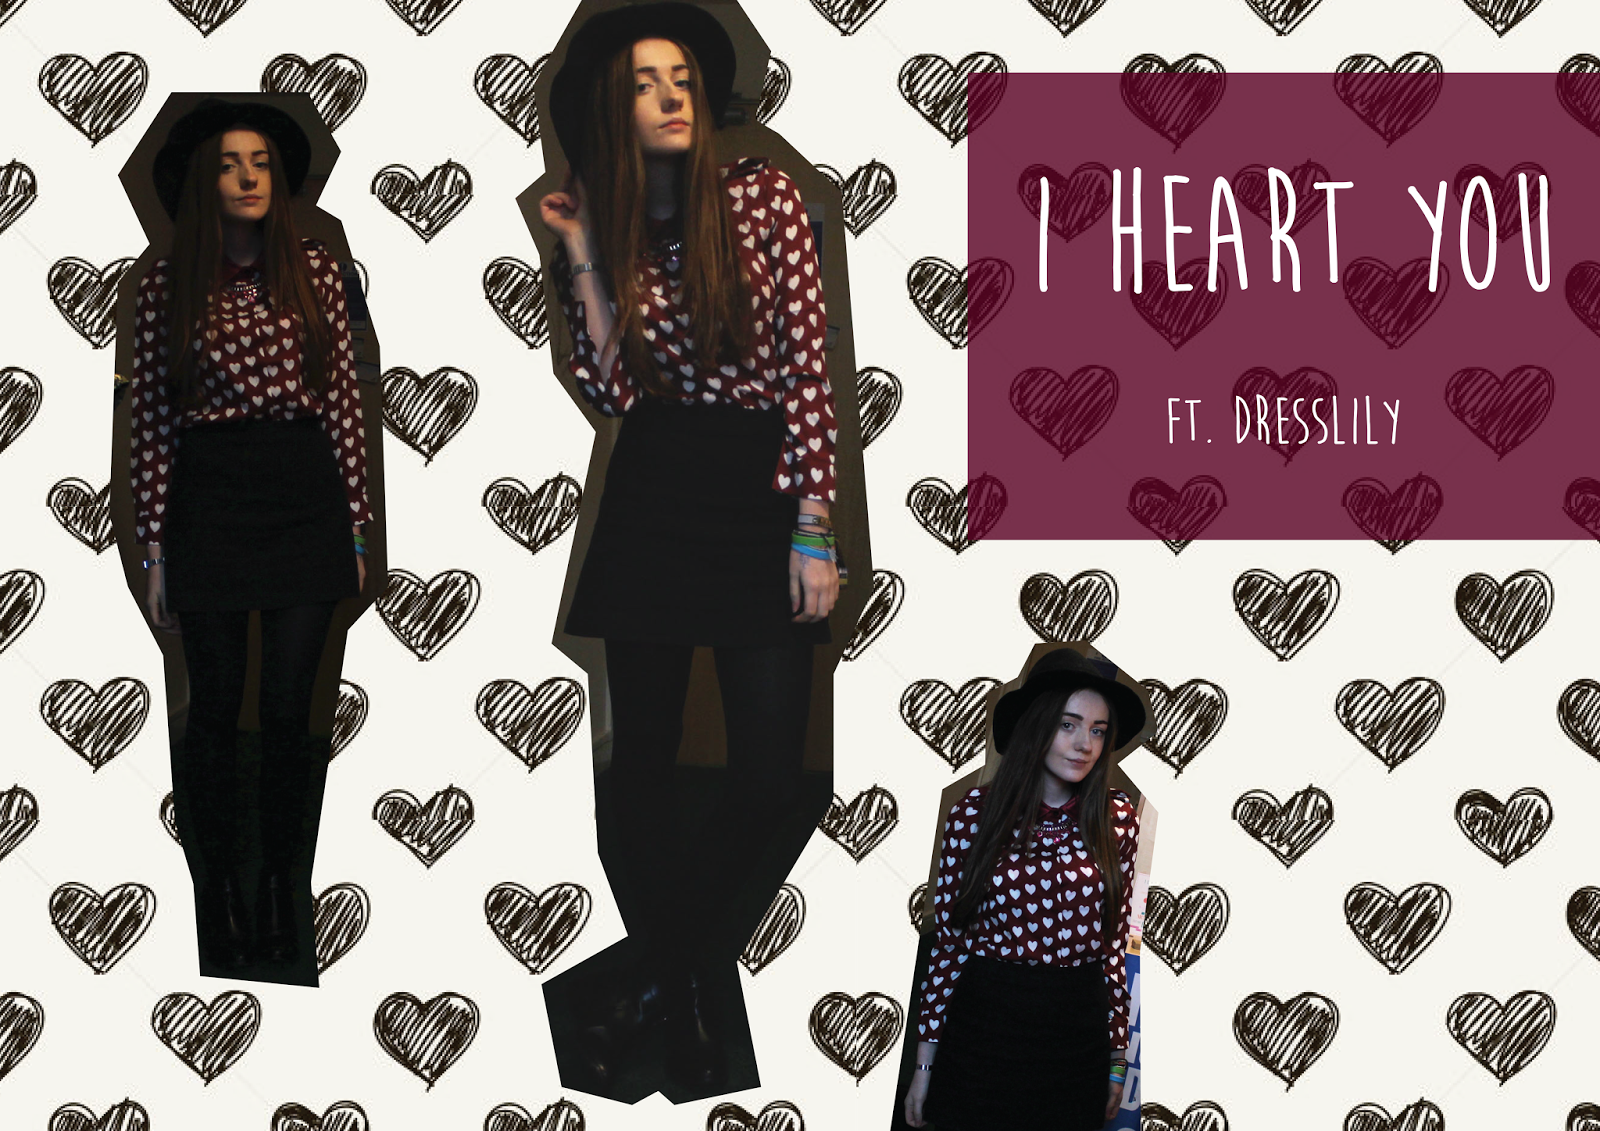 heart print shirt, burgundy white heart shirt blouse, burgundy aw13 inspired shirt, dresslily blogger review